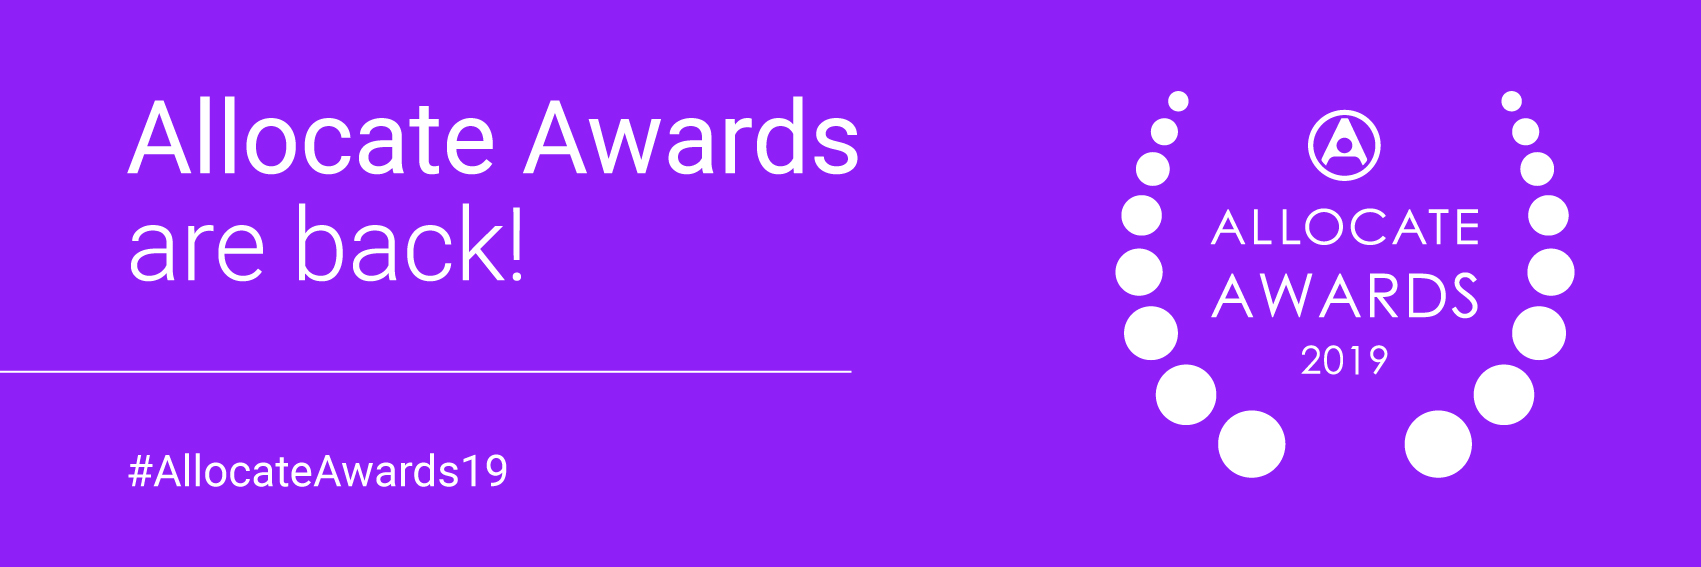 Allocate Awards 2019 Shortlist Announced